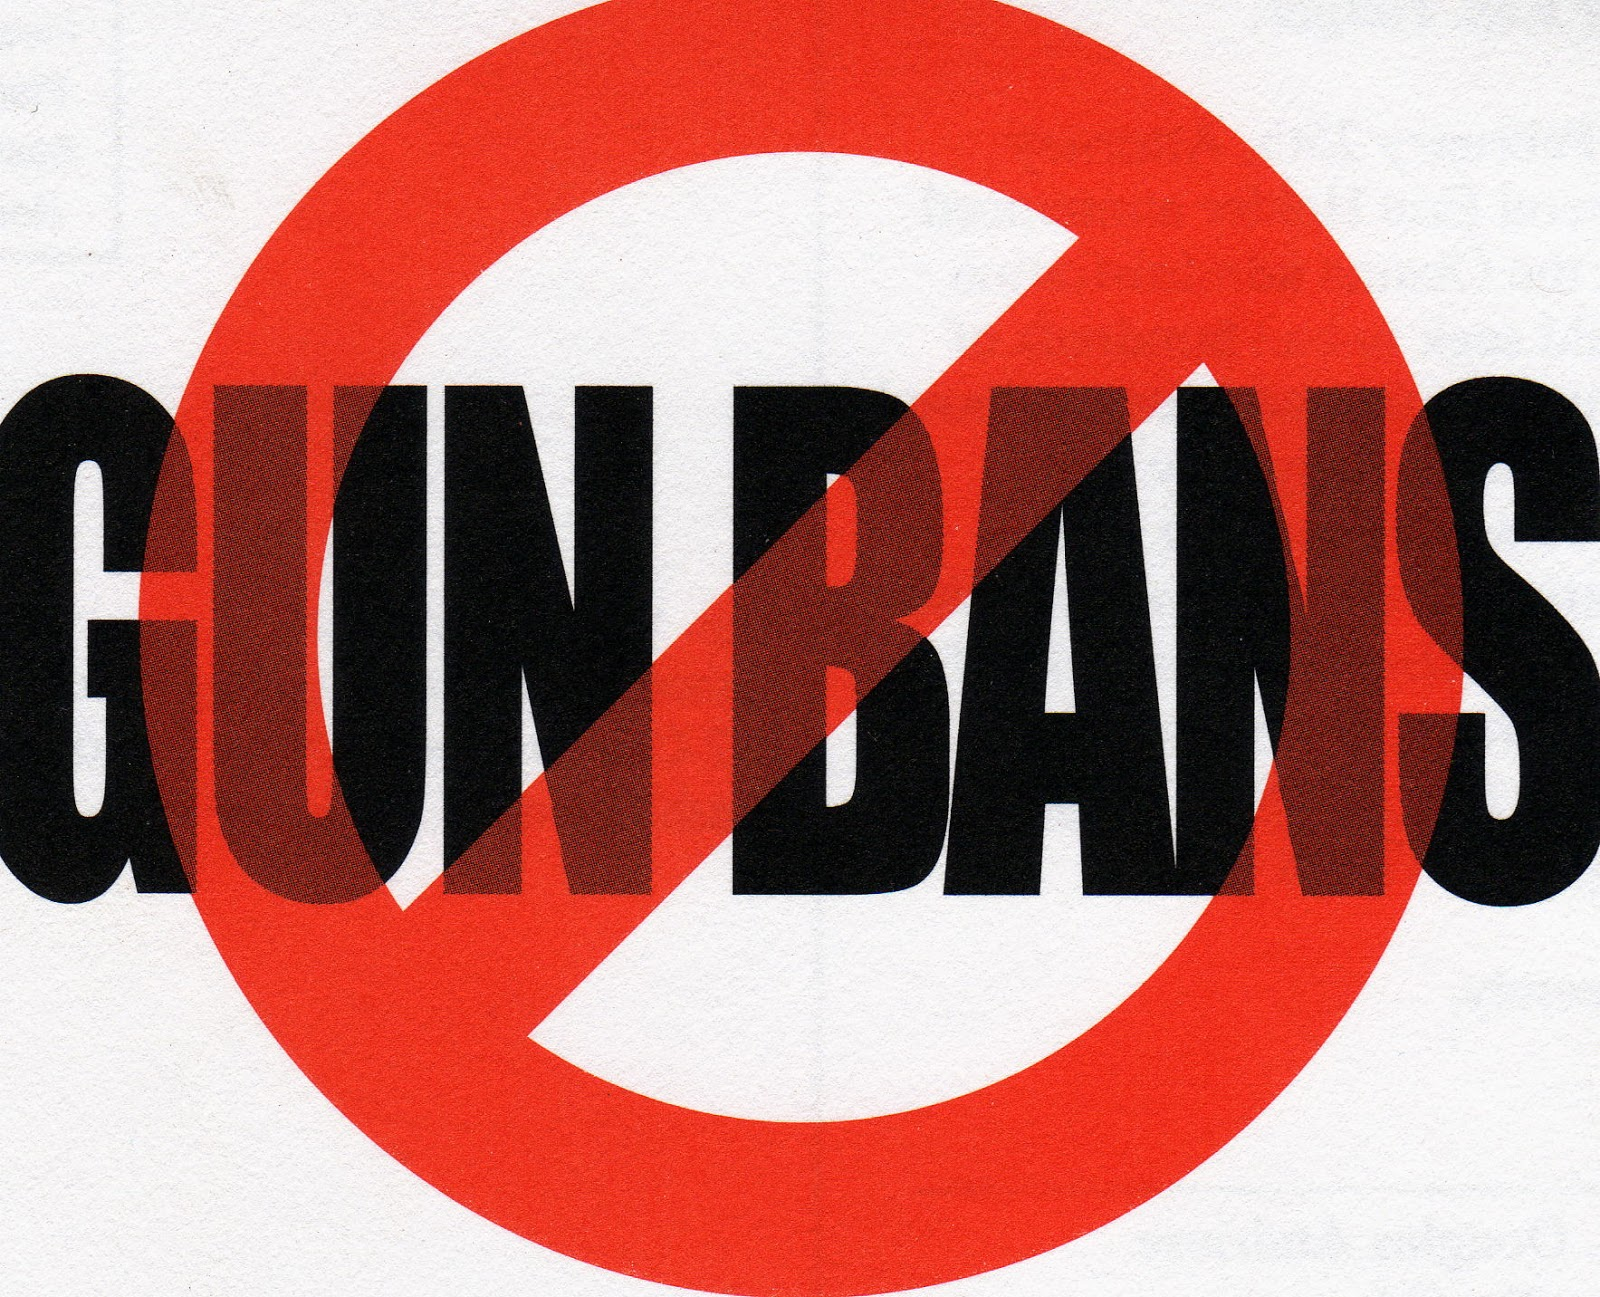 would banning firearms solve the crime This amendment gave way for organized crime to be formed  banning guns wouldn't magically solve all violent crimes  i think that sums up the way i feel .